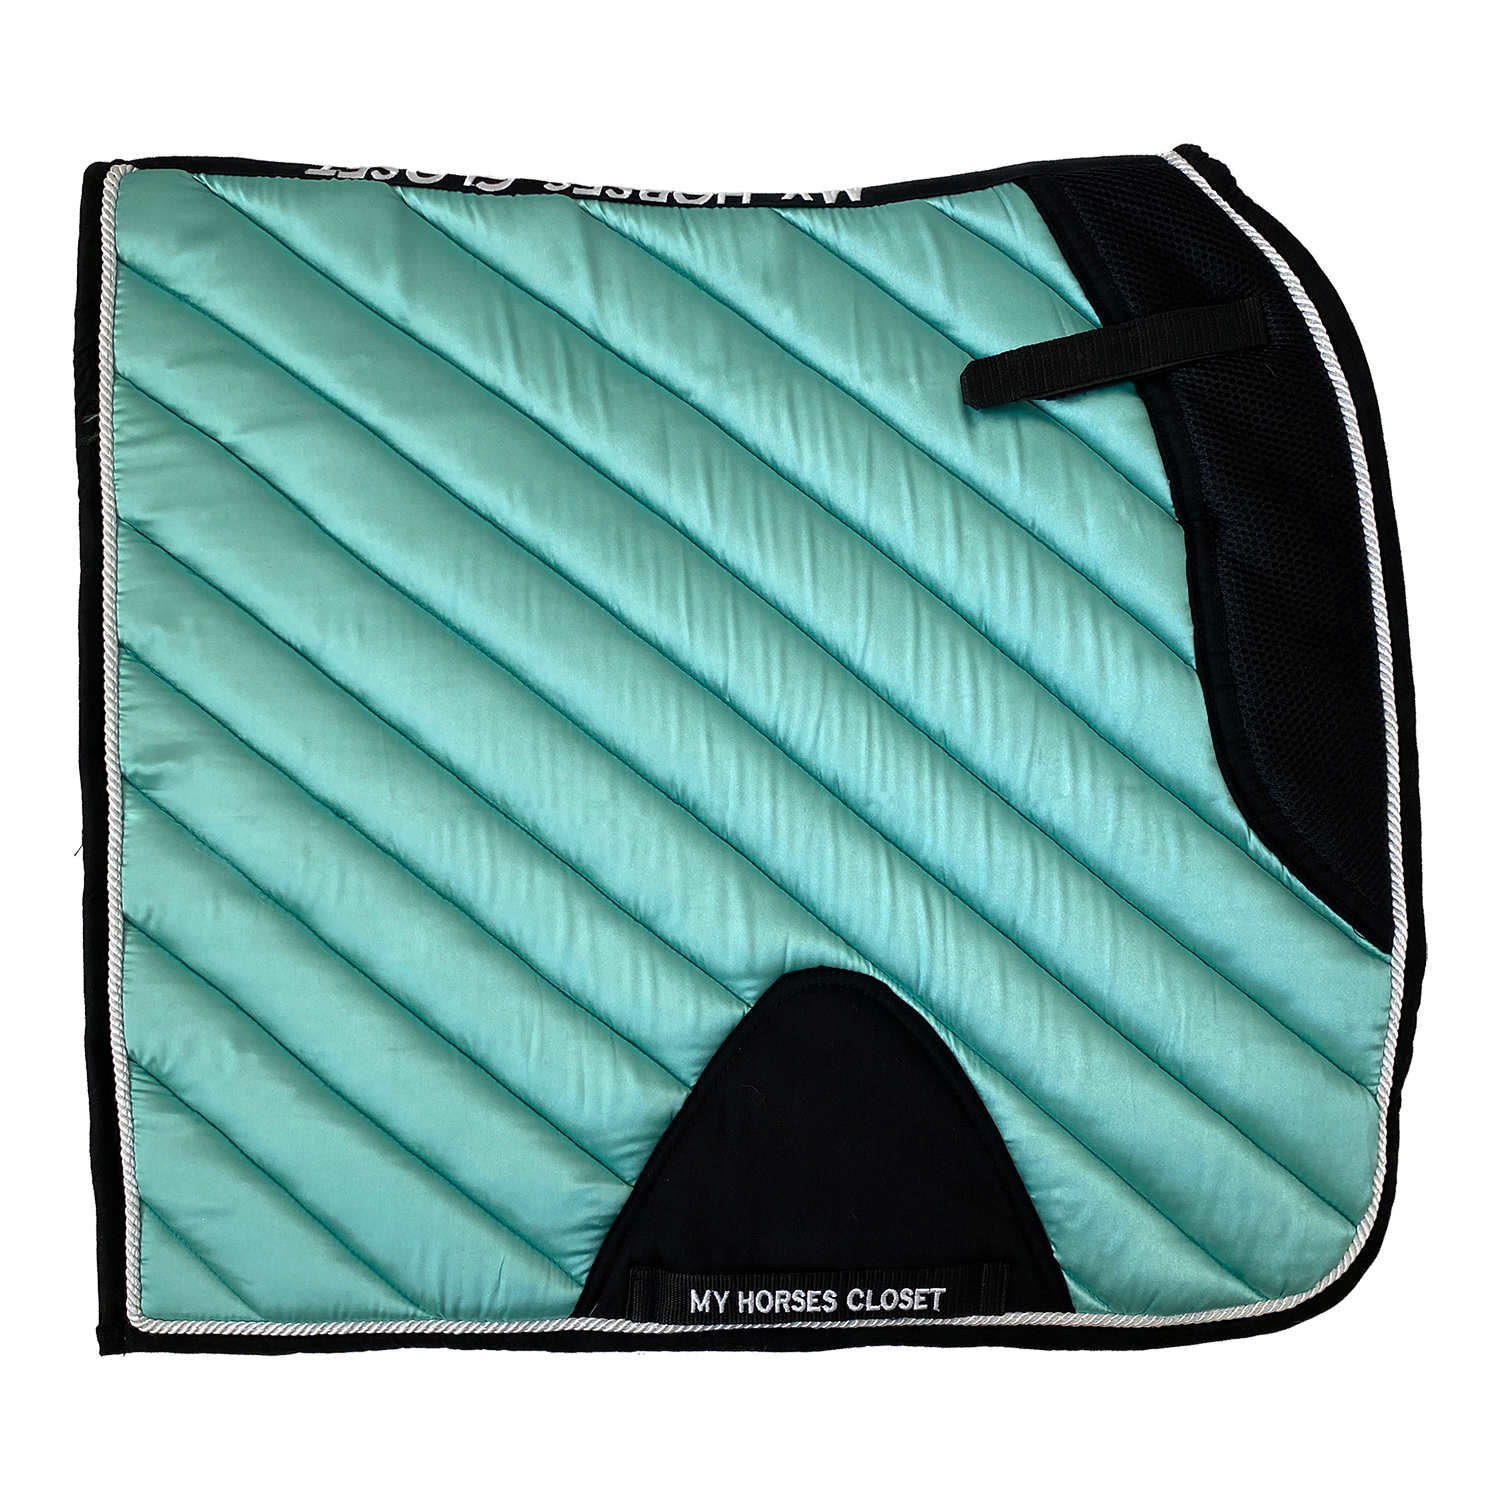 Satin Mesh Dressage Saddle Pad Amboise Seafoam Aqua Blue